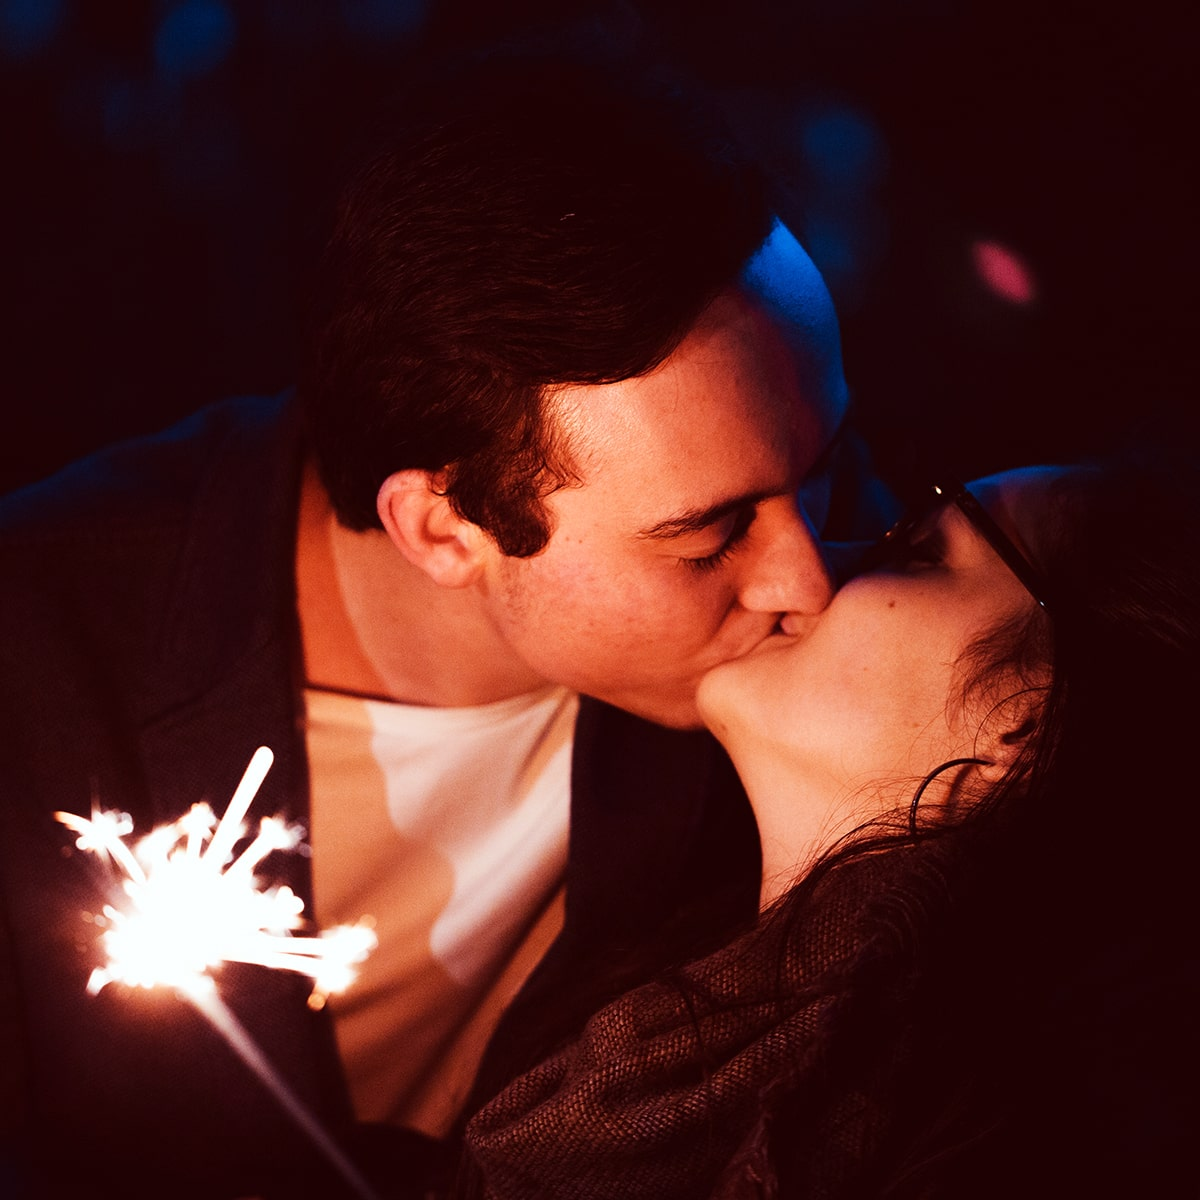 Image of a Sparkler Surprise on a Date Night